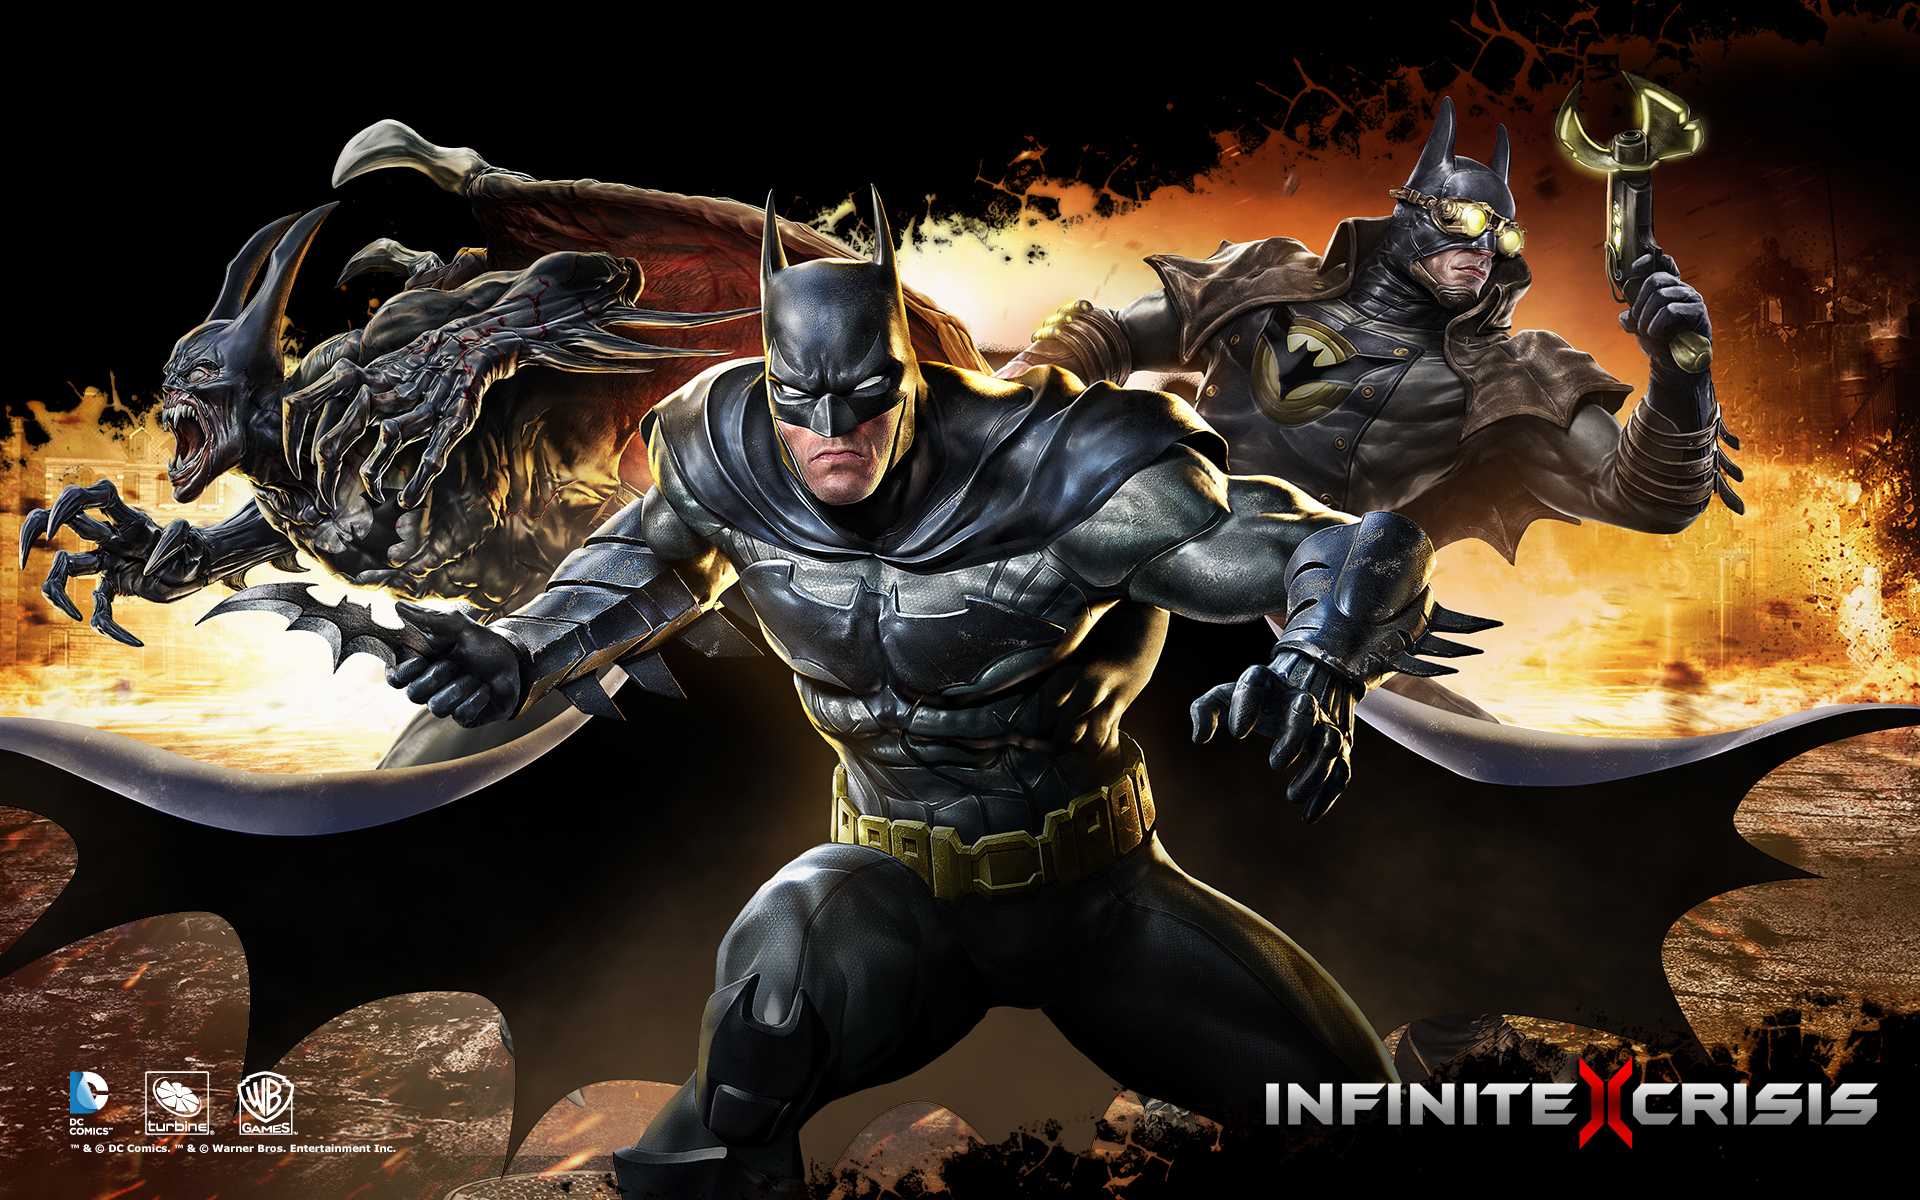 Infinite-Crisis-wallpaper-1